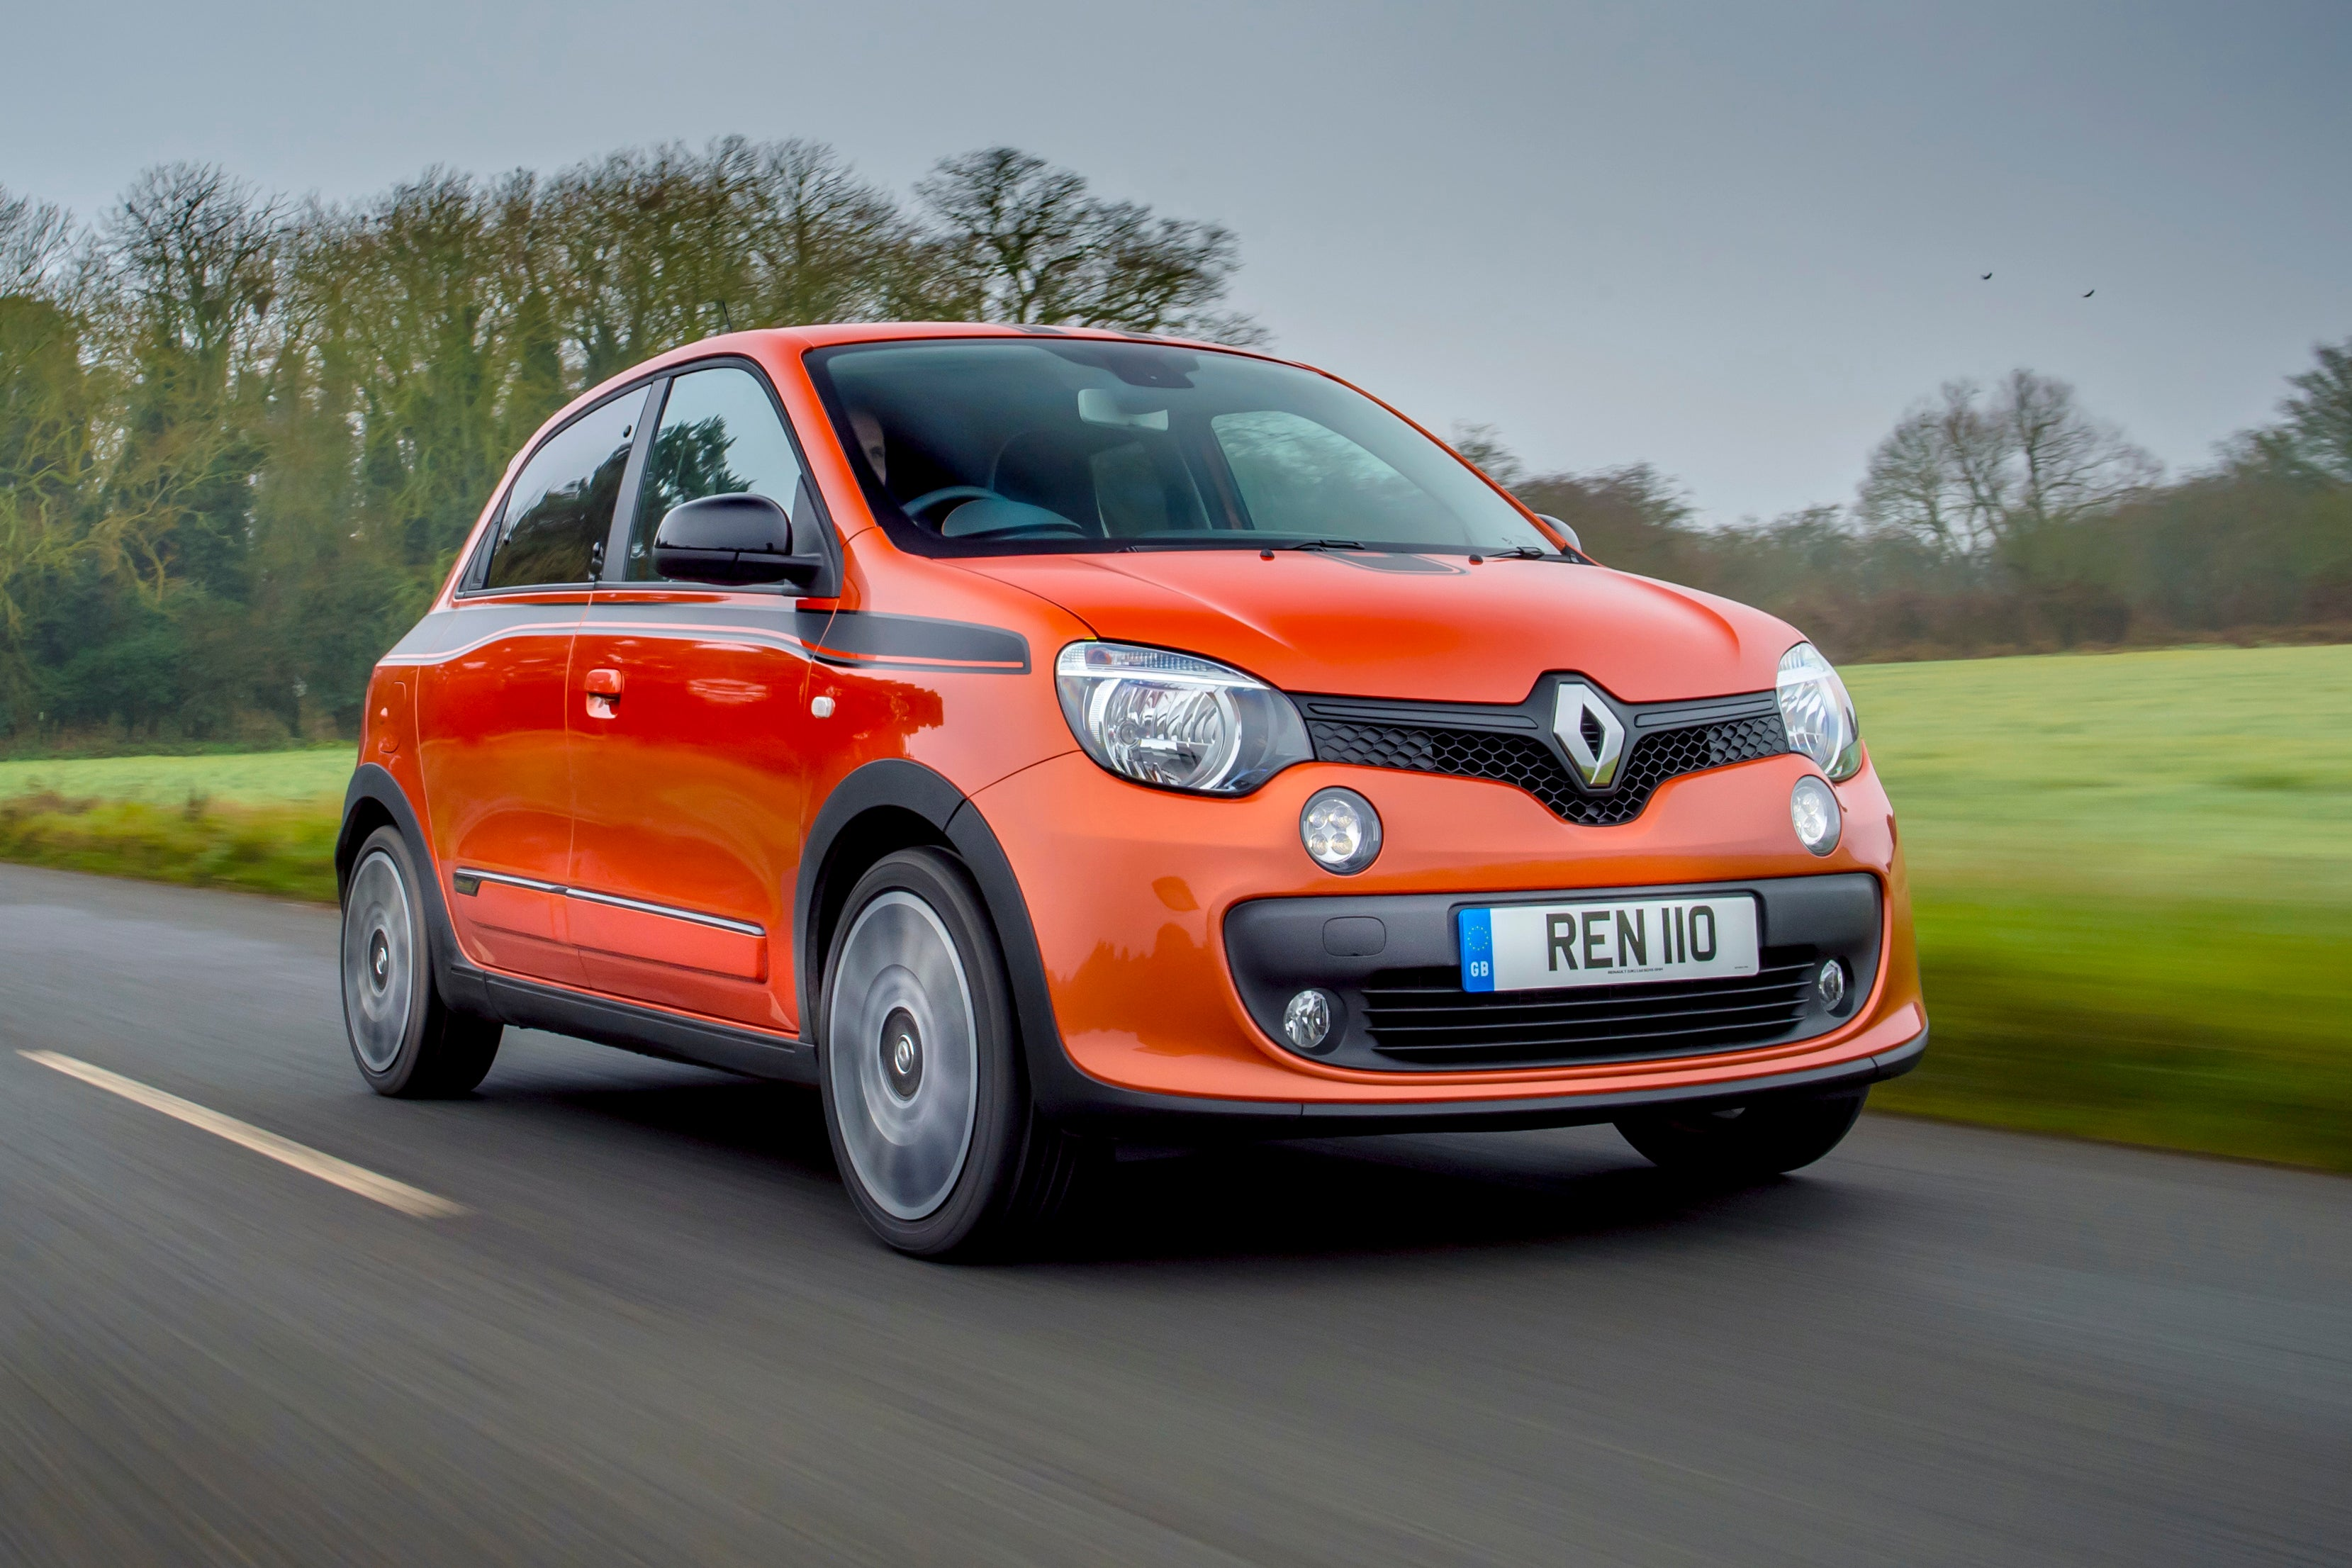 Renault Twingo Front View